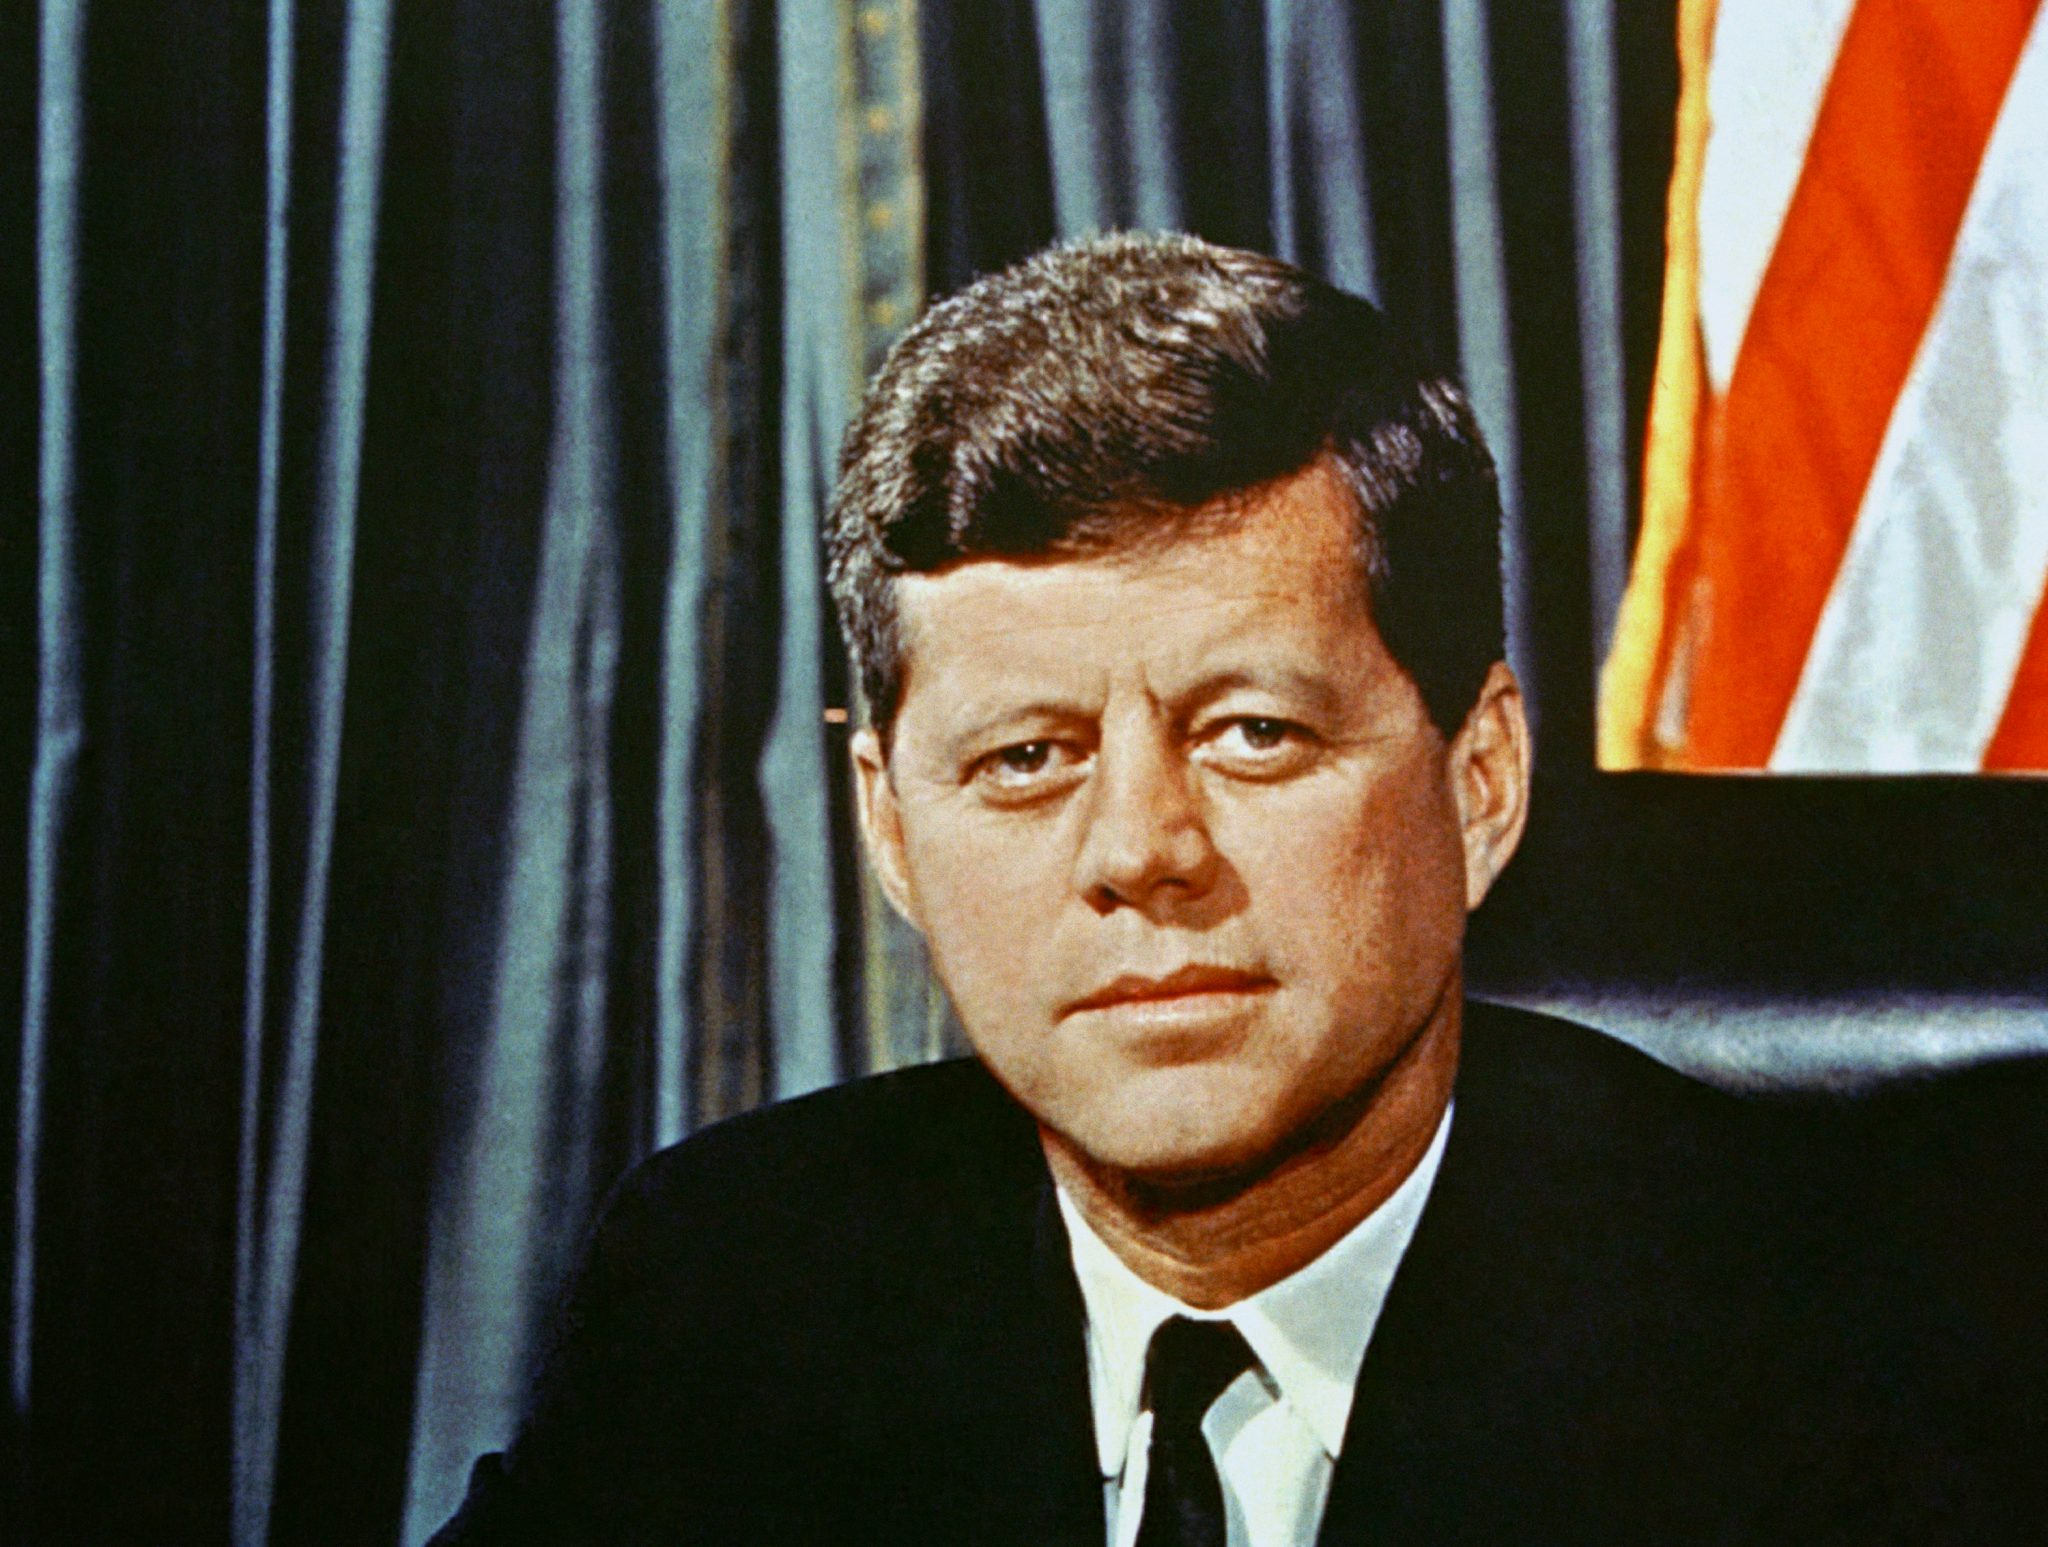 U.S President John F. Kennedy, 1963 (AP Photo)